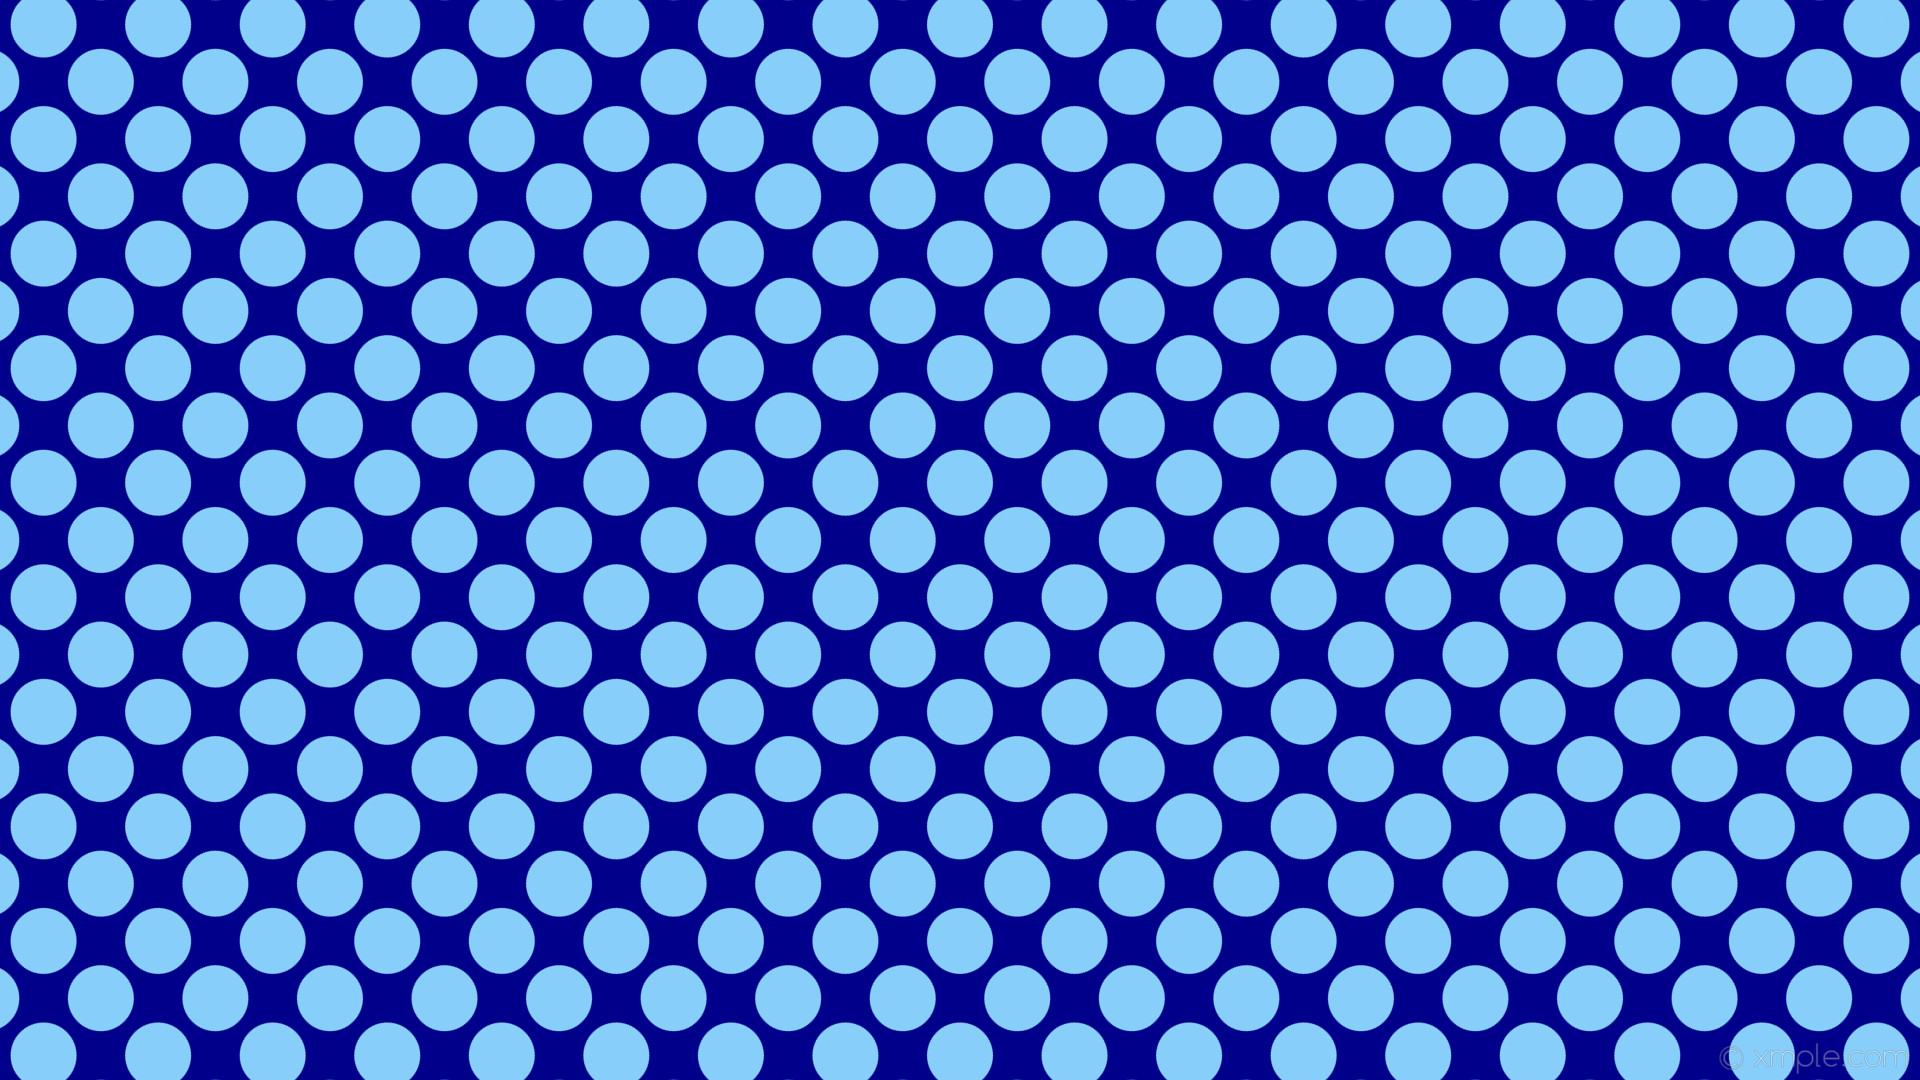 wallpaper spots blue polka dots dark blue light sky blue #00008b #87cefa  135°